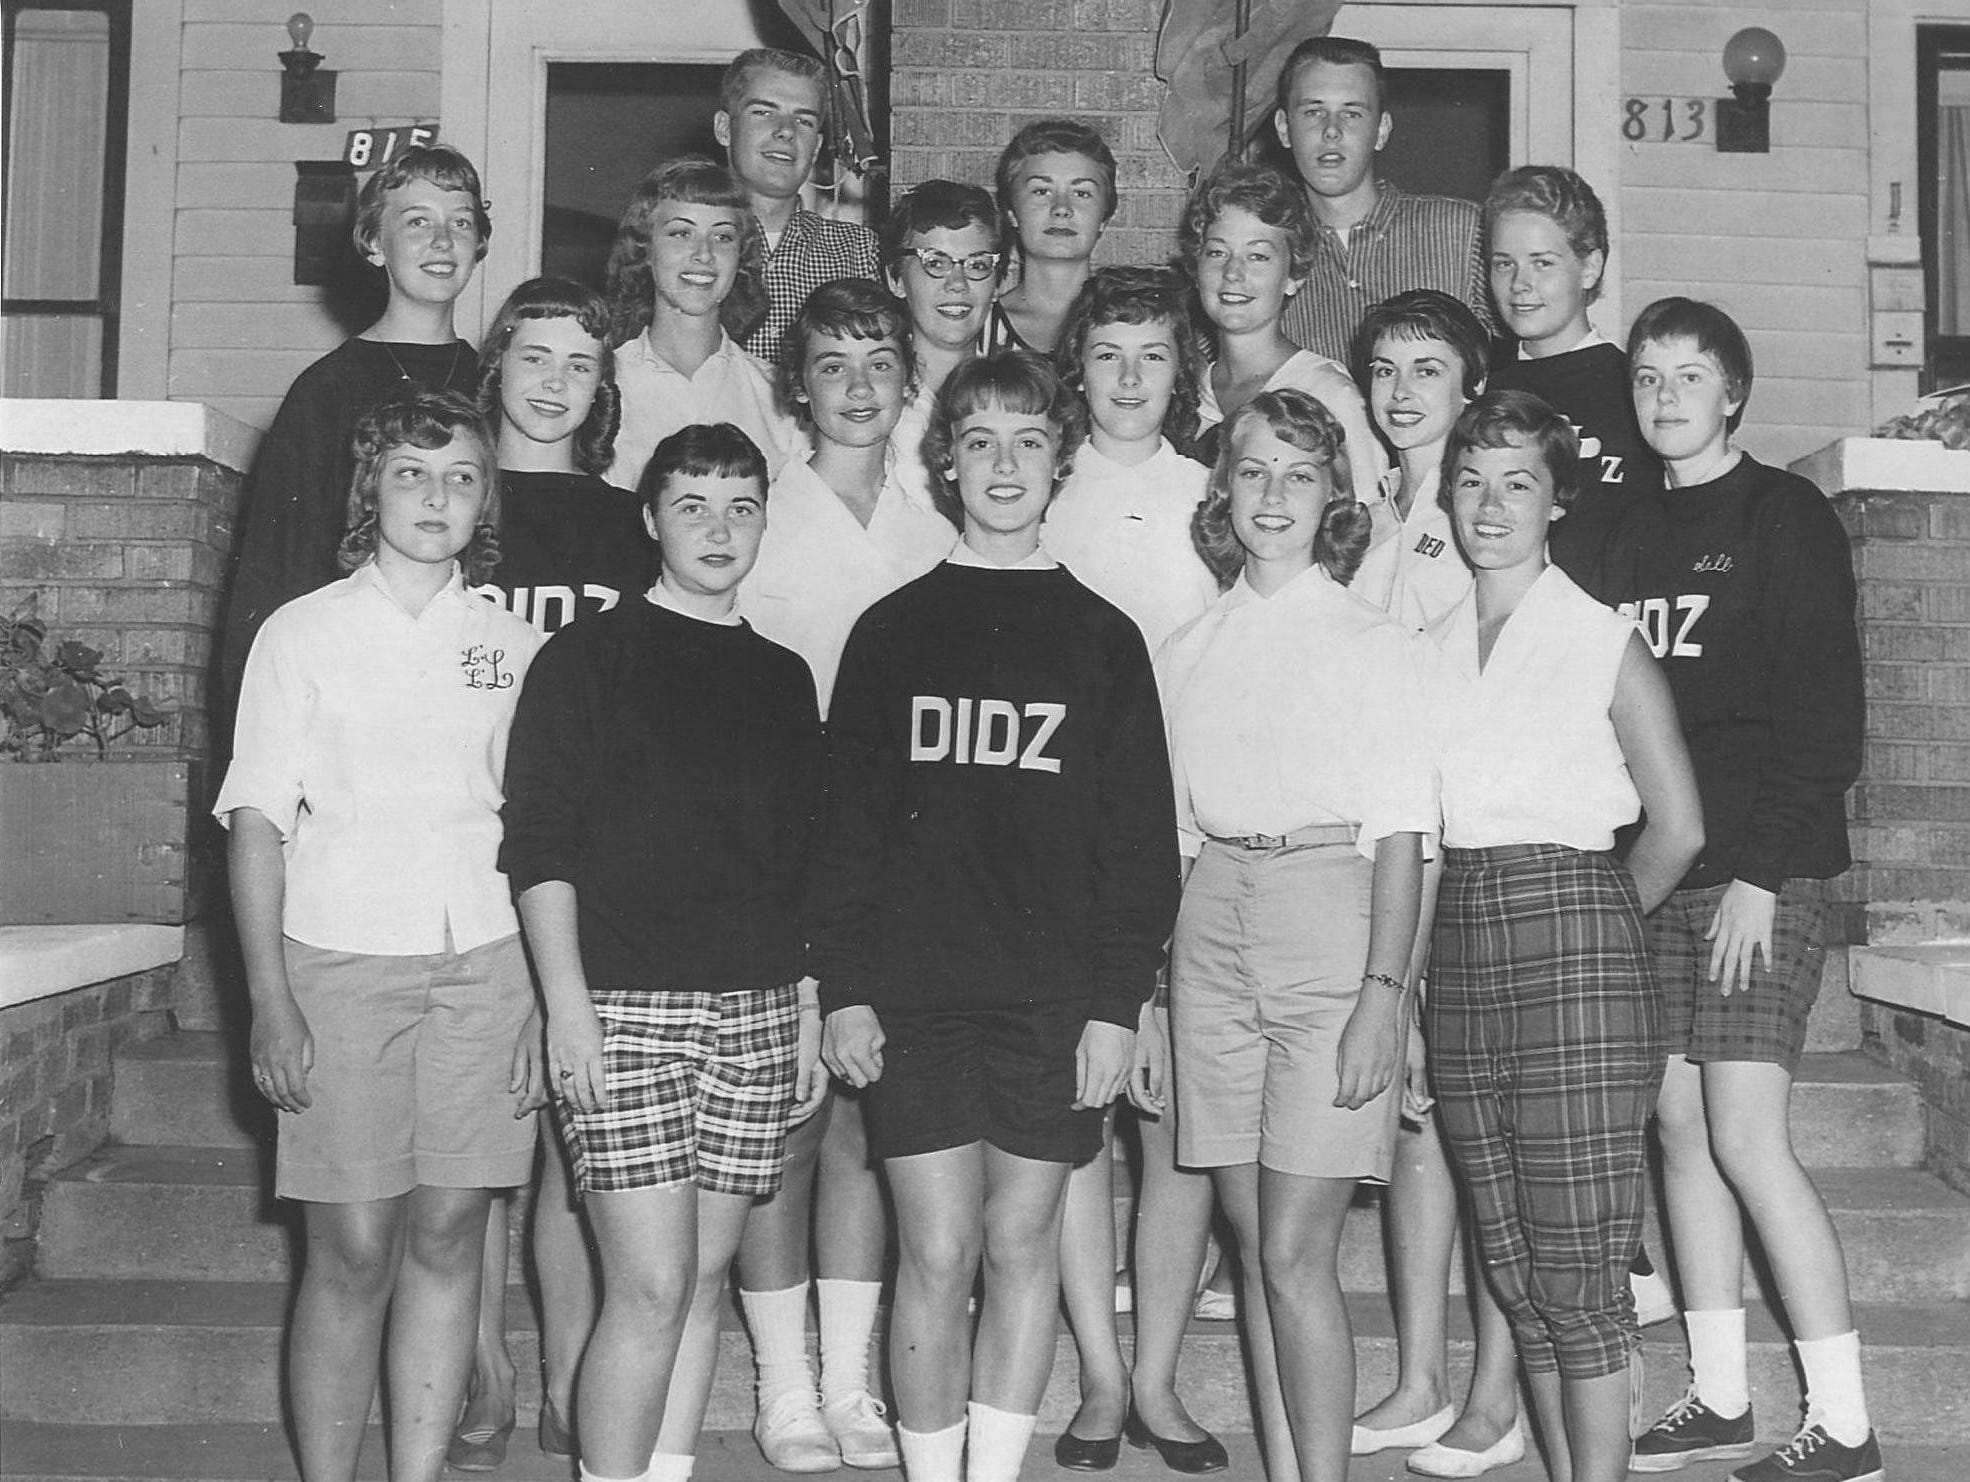 zMembers of the Darling, Idolized Dolls Club (DIDZ) Club, all 1959 graduates of Thomas Carr Howe High School in Indianapolis are (from left, back row)  Sue Staton, Denny Fulk, Natalie Lisby, Judy Sparks, Glenda Nicholas, Susan Glore, Dave Truelock,  Nancy Sharp, (second row) Mary Jo Pride, Diane Farmer, Joyce Stevens, Joyce Godwin, Diane Dobbs, Sally Ouweneel, (front row) Linda Reynolds, Judy Coe, Lana Zeyen, Nancy Cole, Carolyn Knecht.